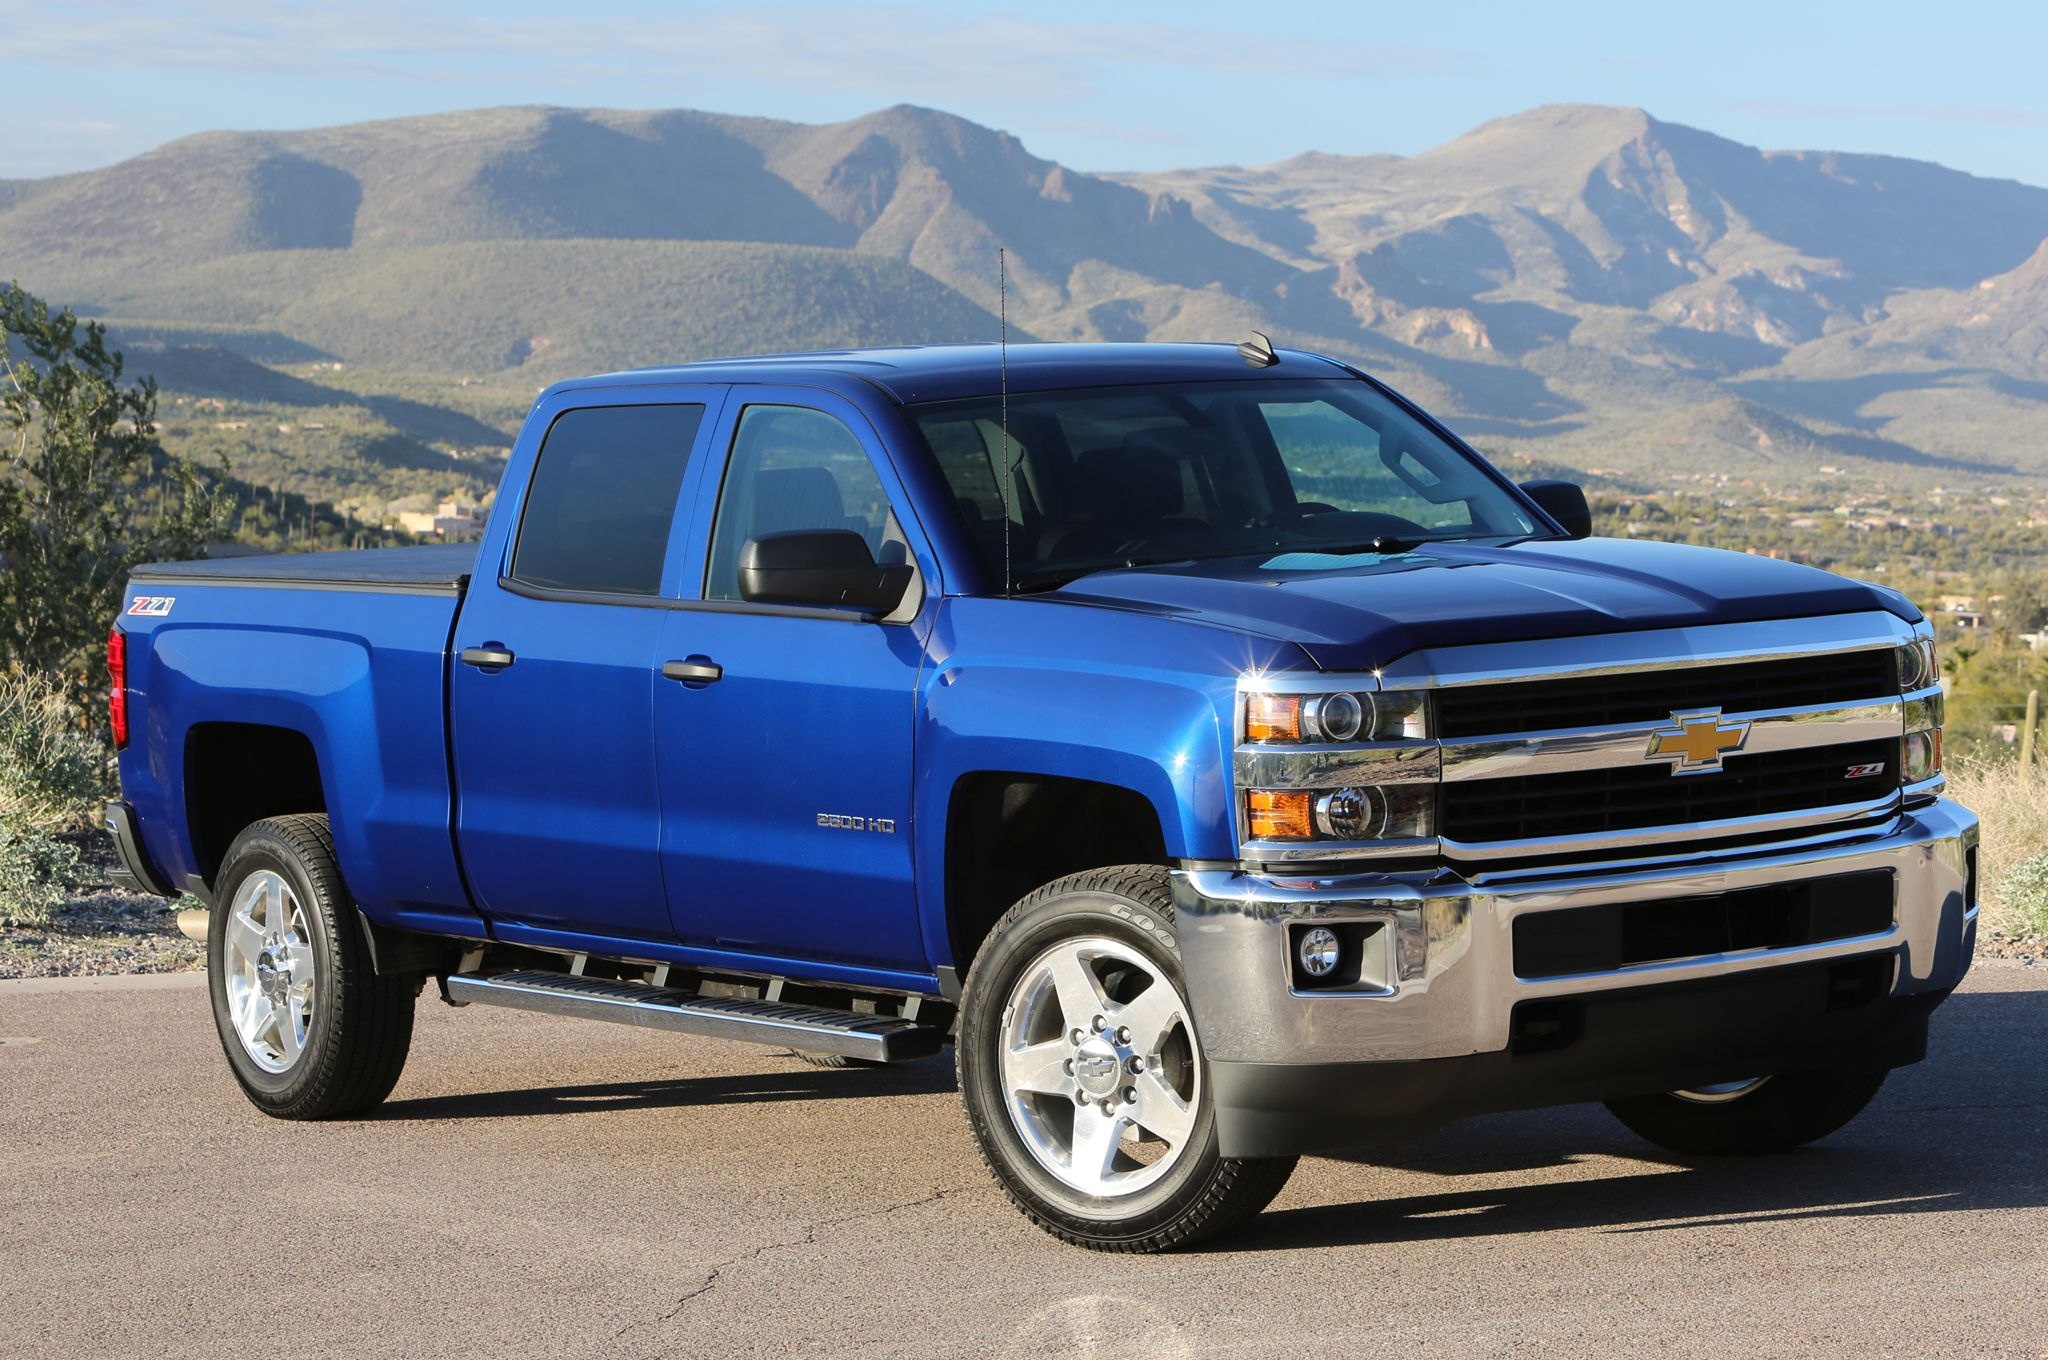 2015 Chevrolet Silverado 2500hd Lt Front View Photo 23 Chevrolet